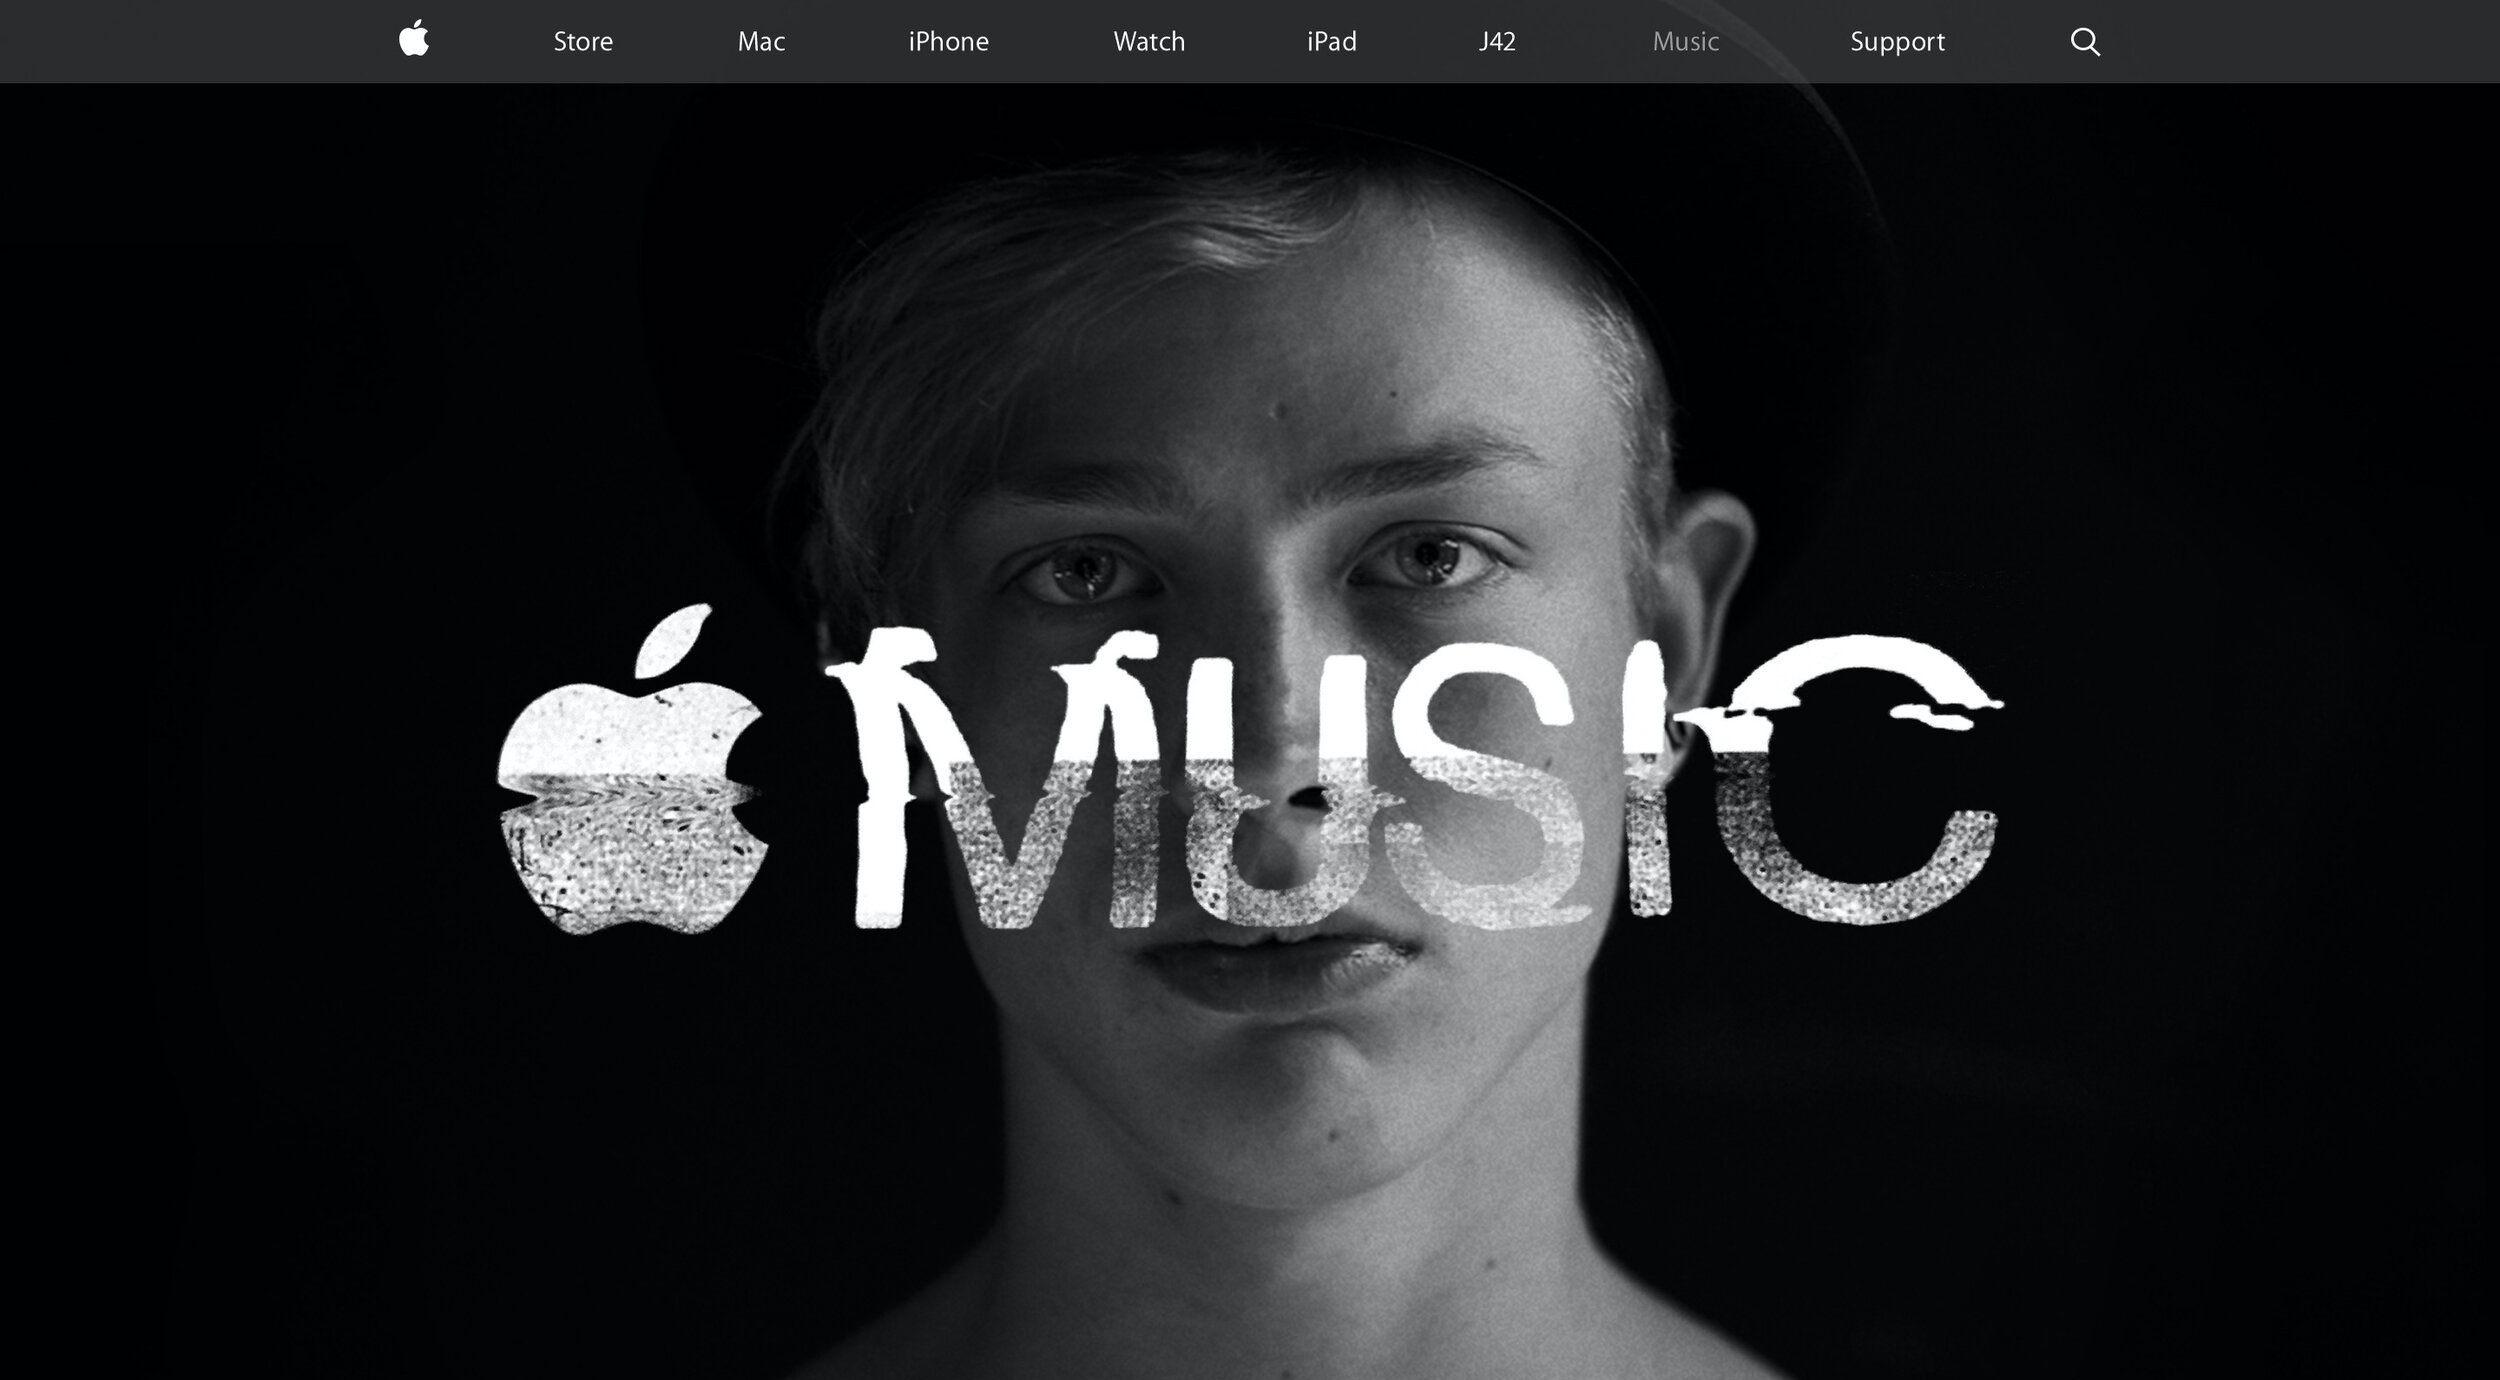 Apple Music Launches 50 Million Covid 19 Advance Royalty Fund To Help Indie Labels 9to5mac